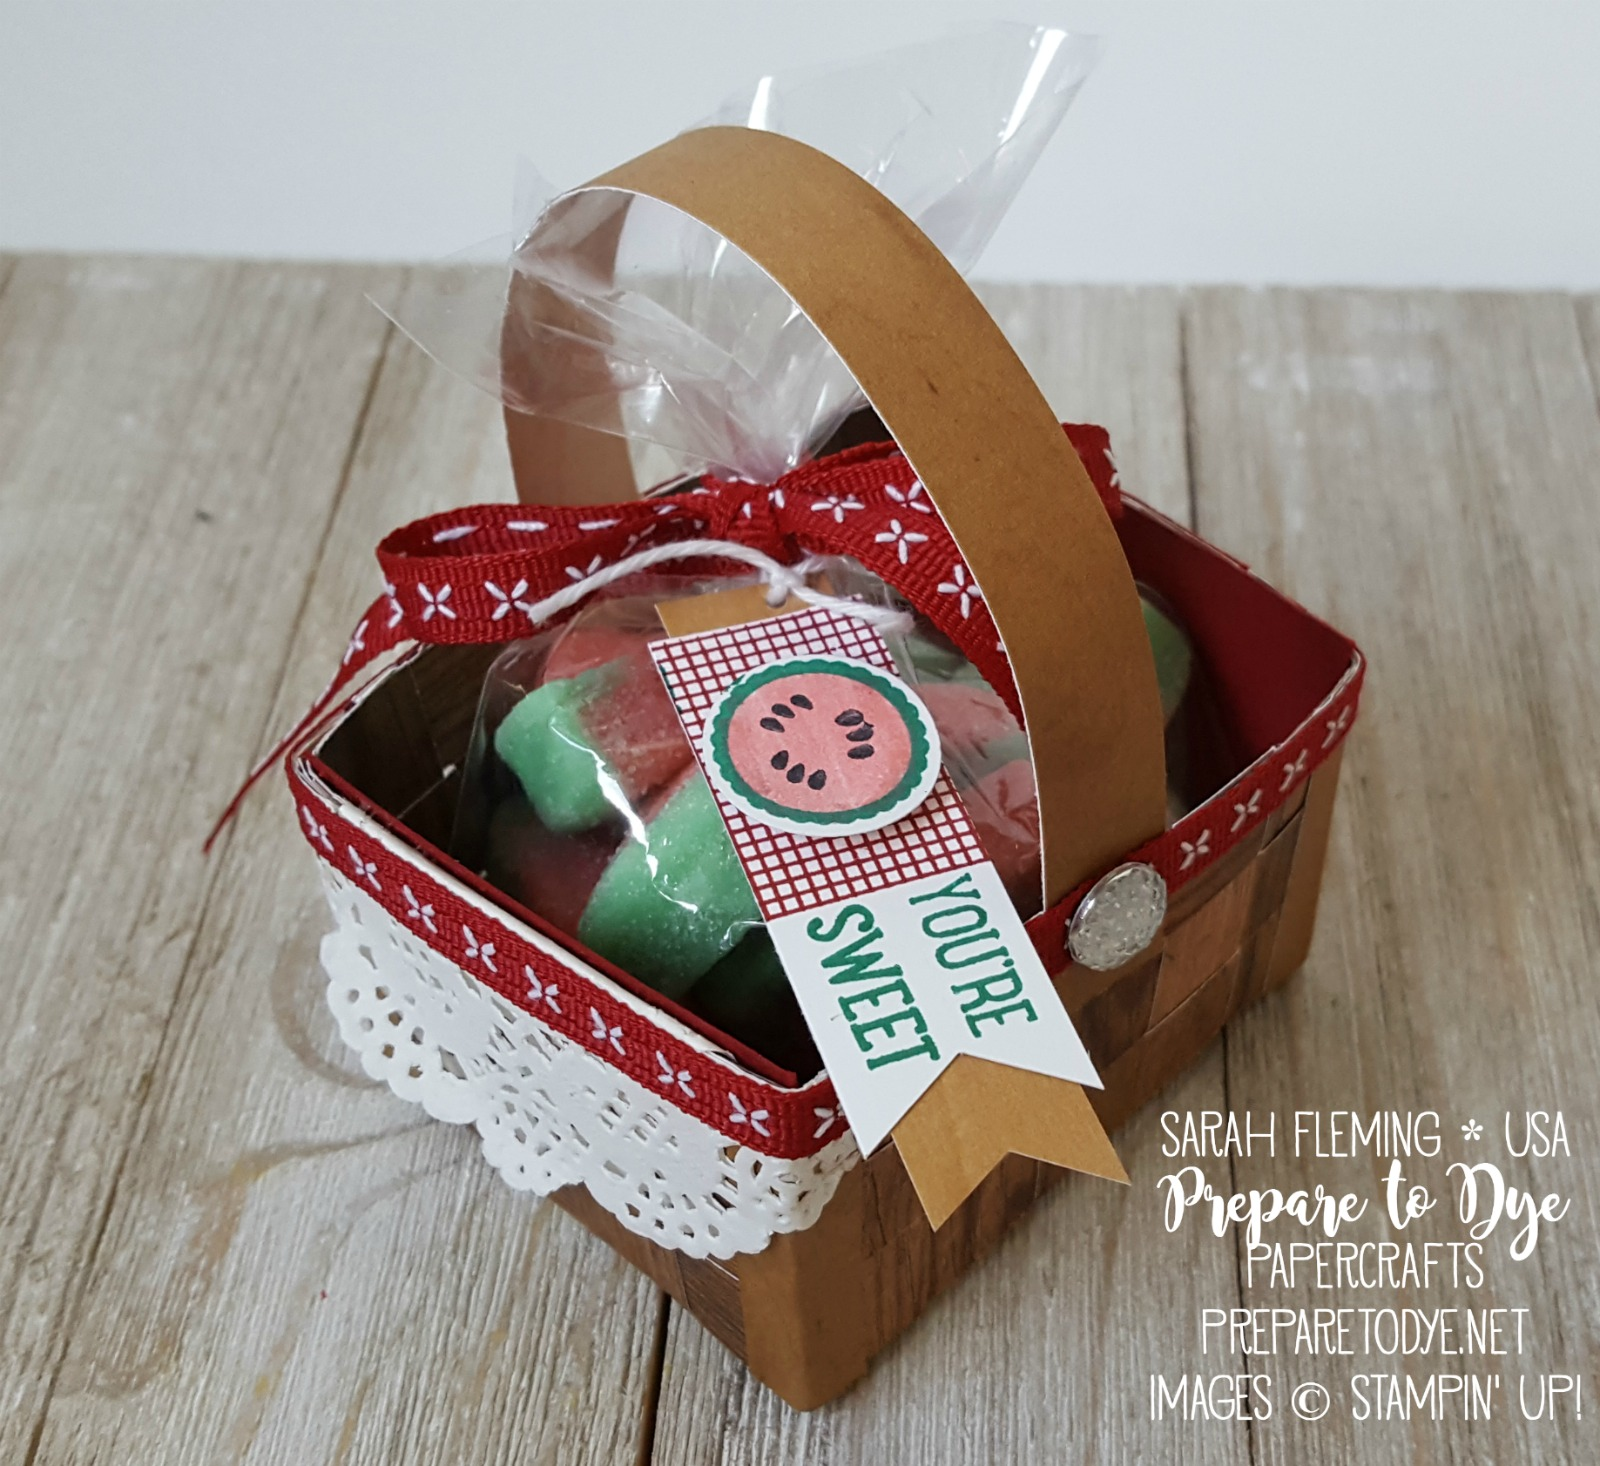 Stampin' Up! Wood Textures dsp stack, basket weave paper picnic basket, watermelon candy treat container, Tabs for Everything